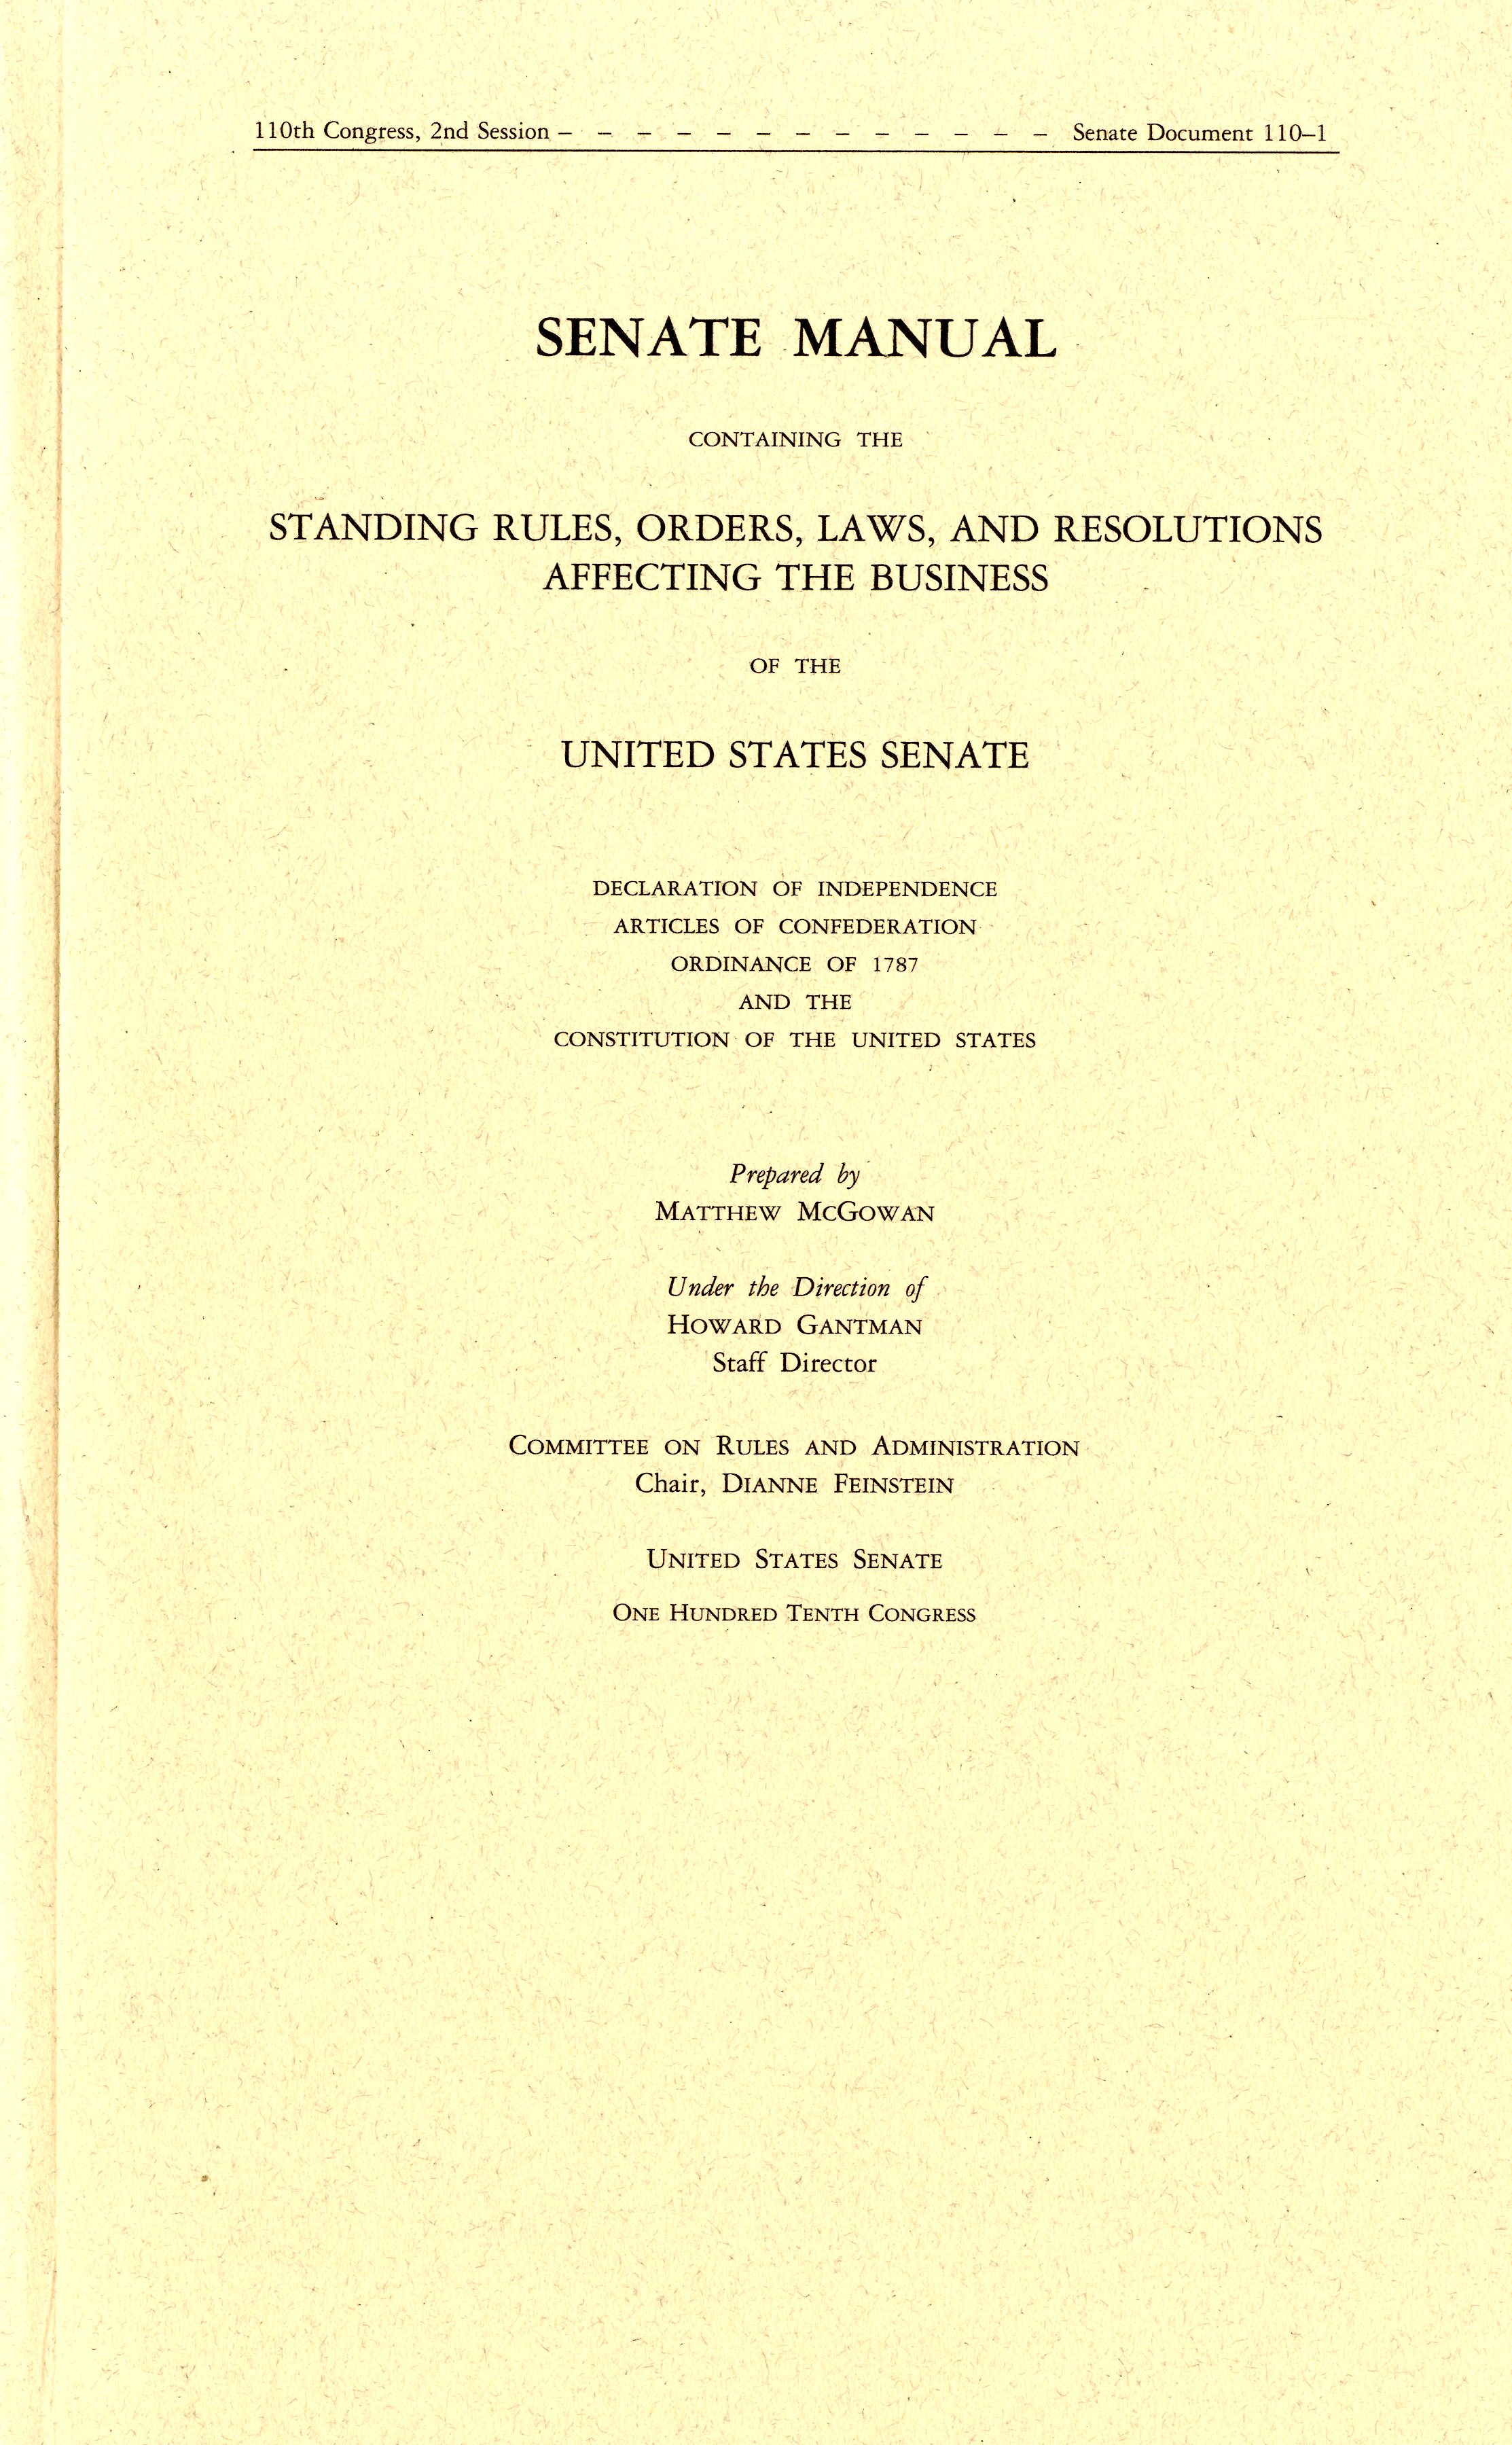 Leadership In The 116th Congress Manual Guide